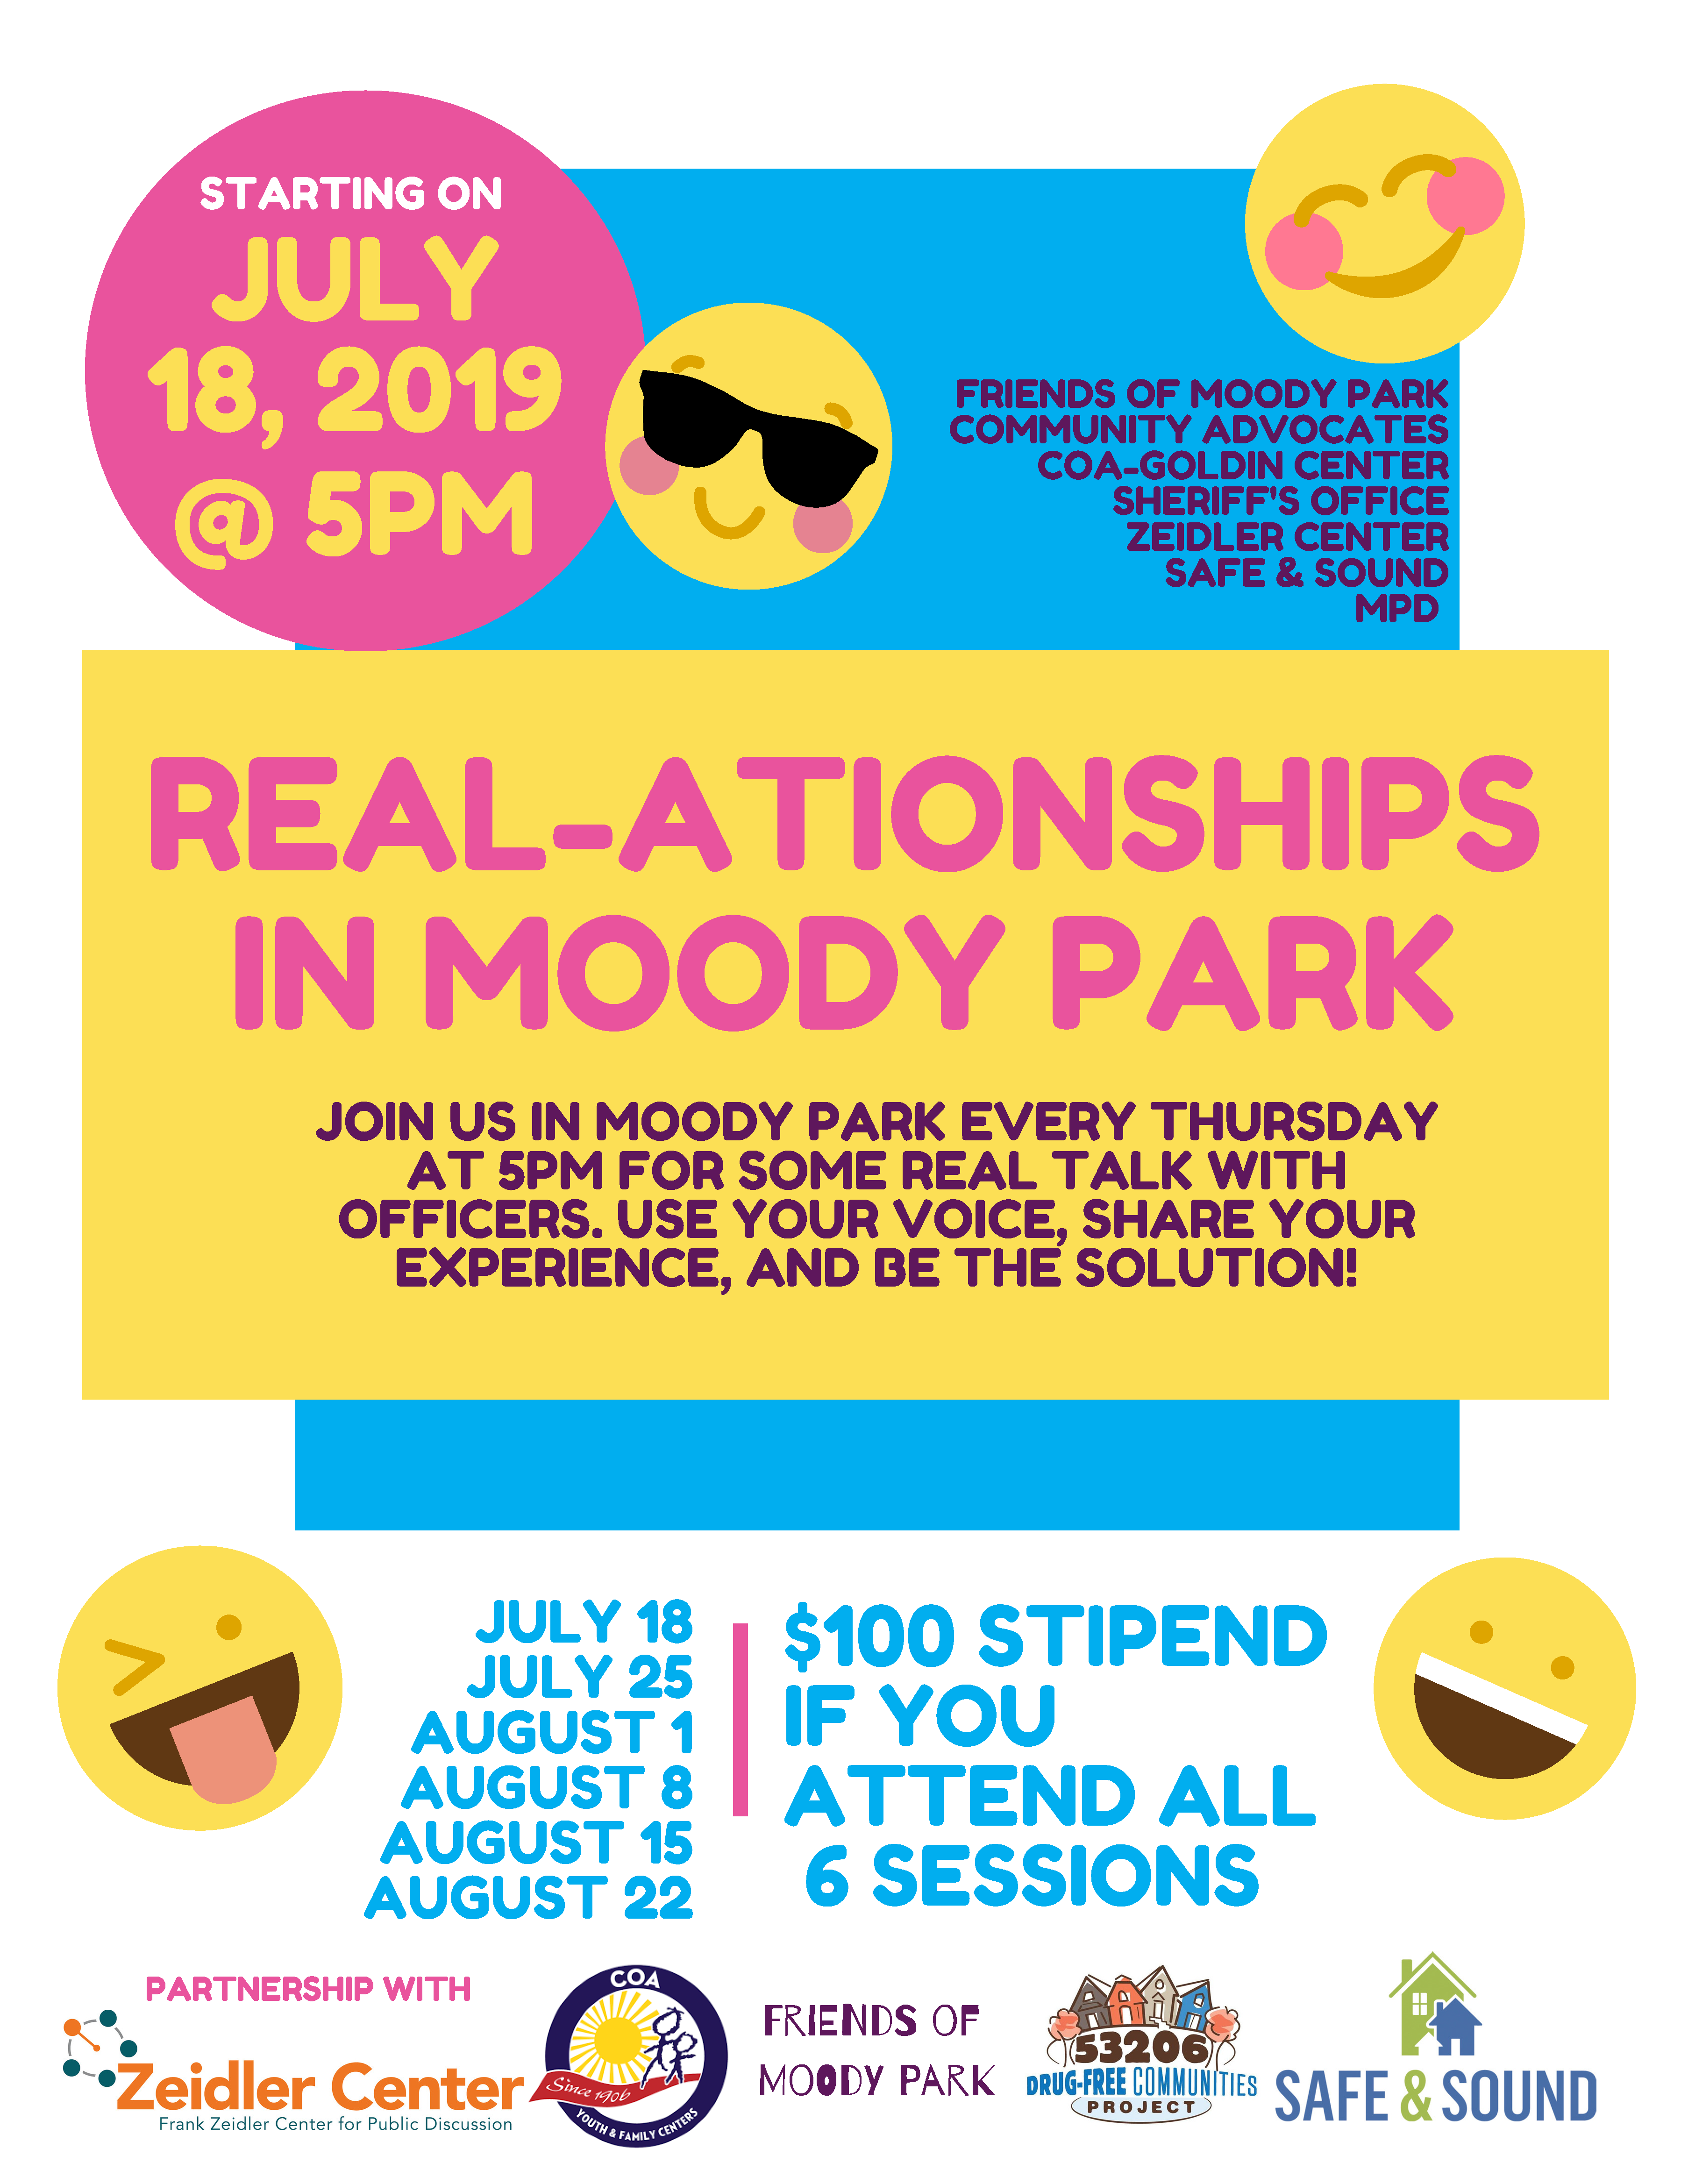 Spotlight On: Real-ationships in Moody Park